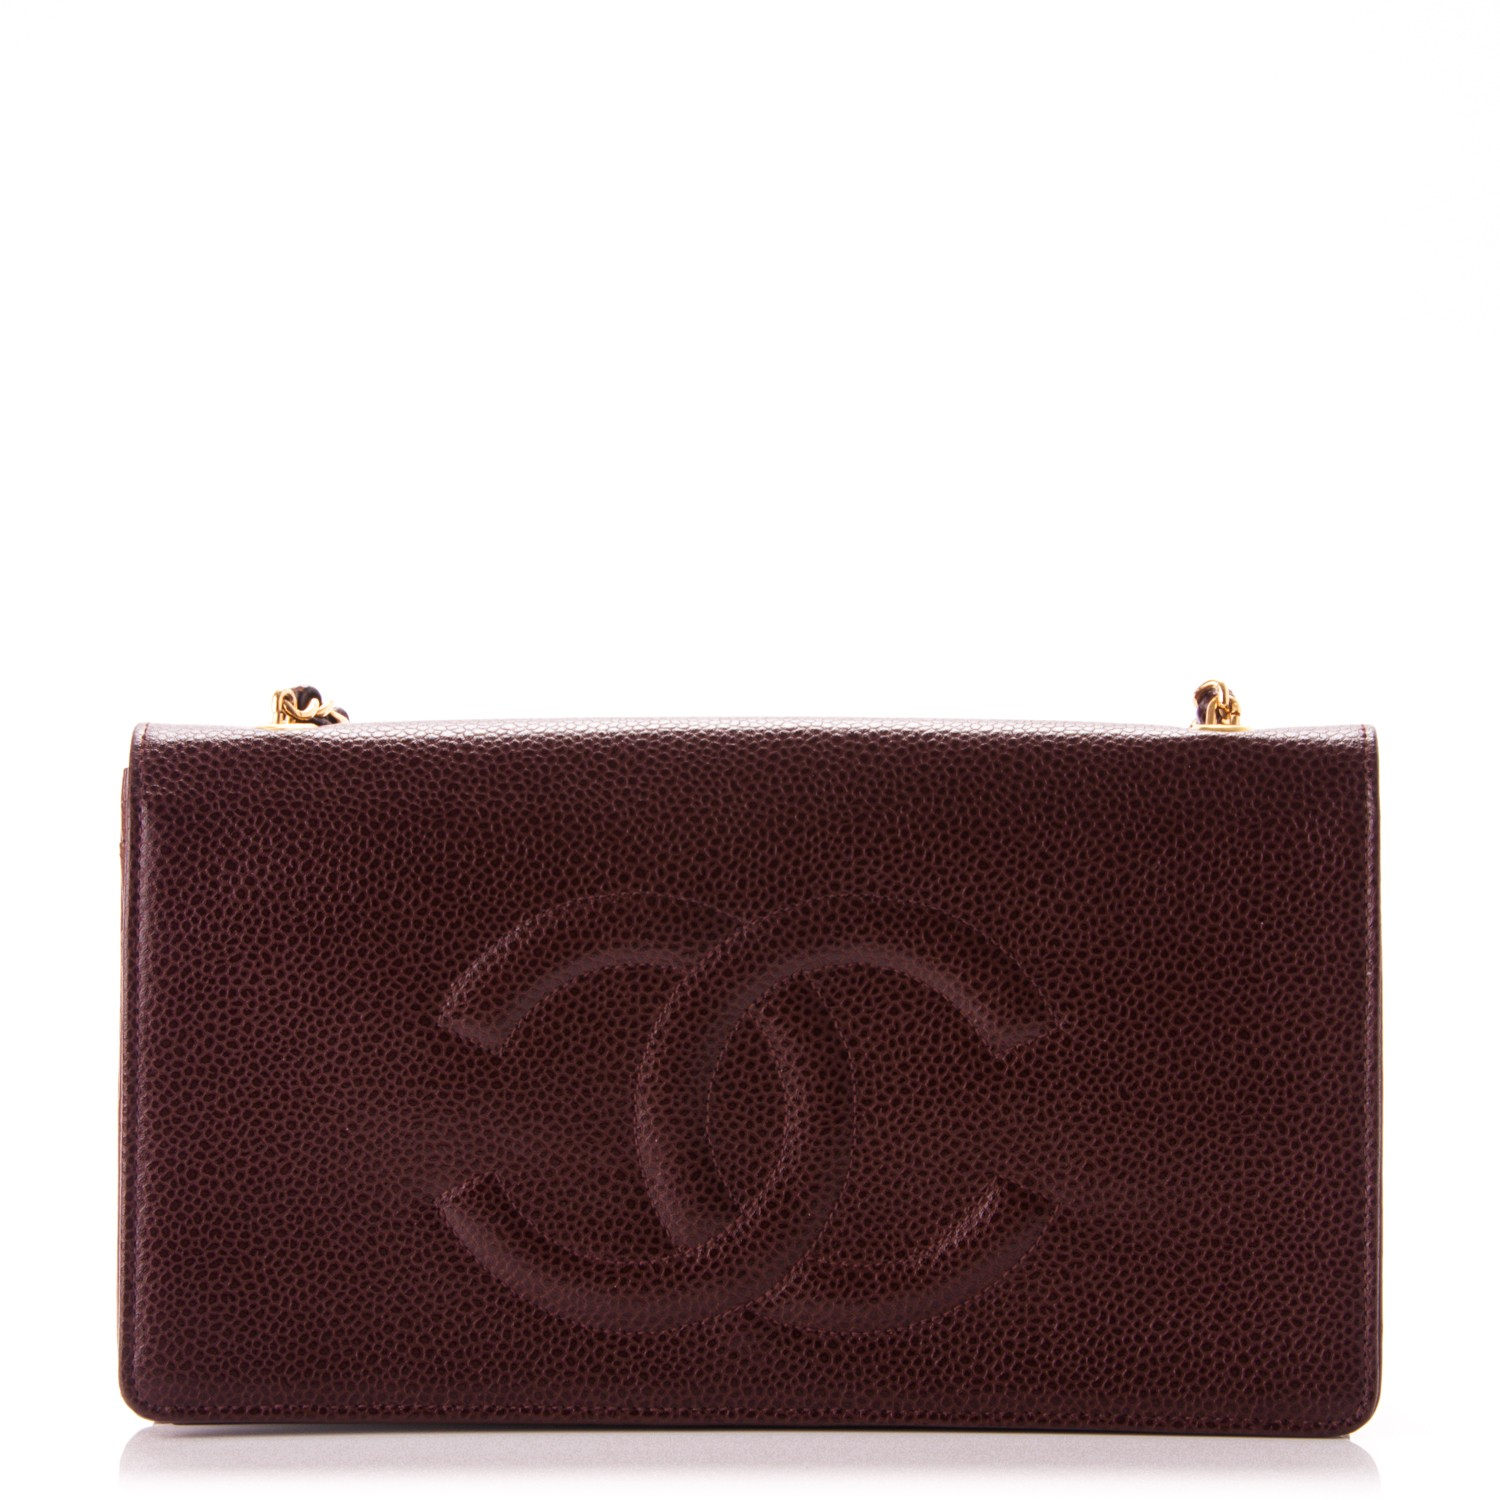 70cc8b15279a CHANEL Caviar Timeless CC Wallet on Chain WOC Brown 176855